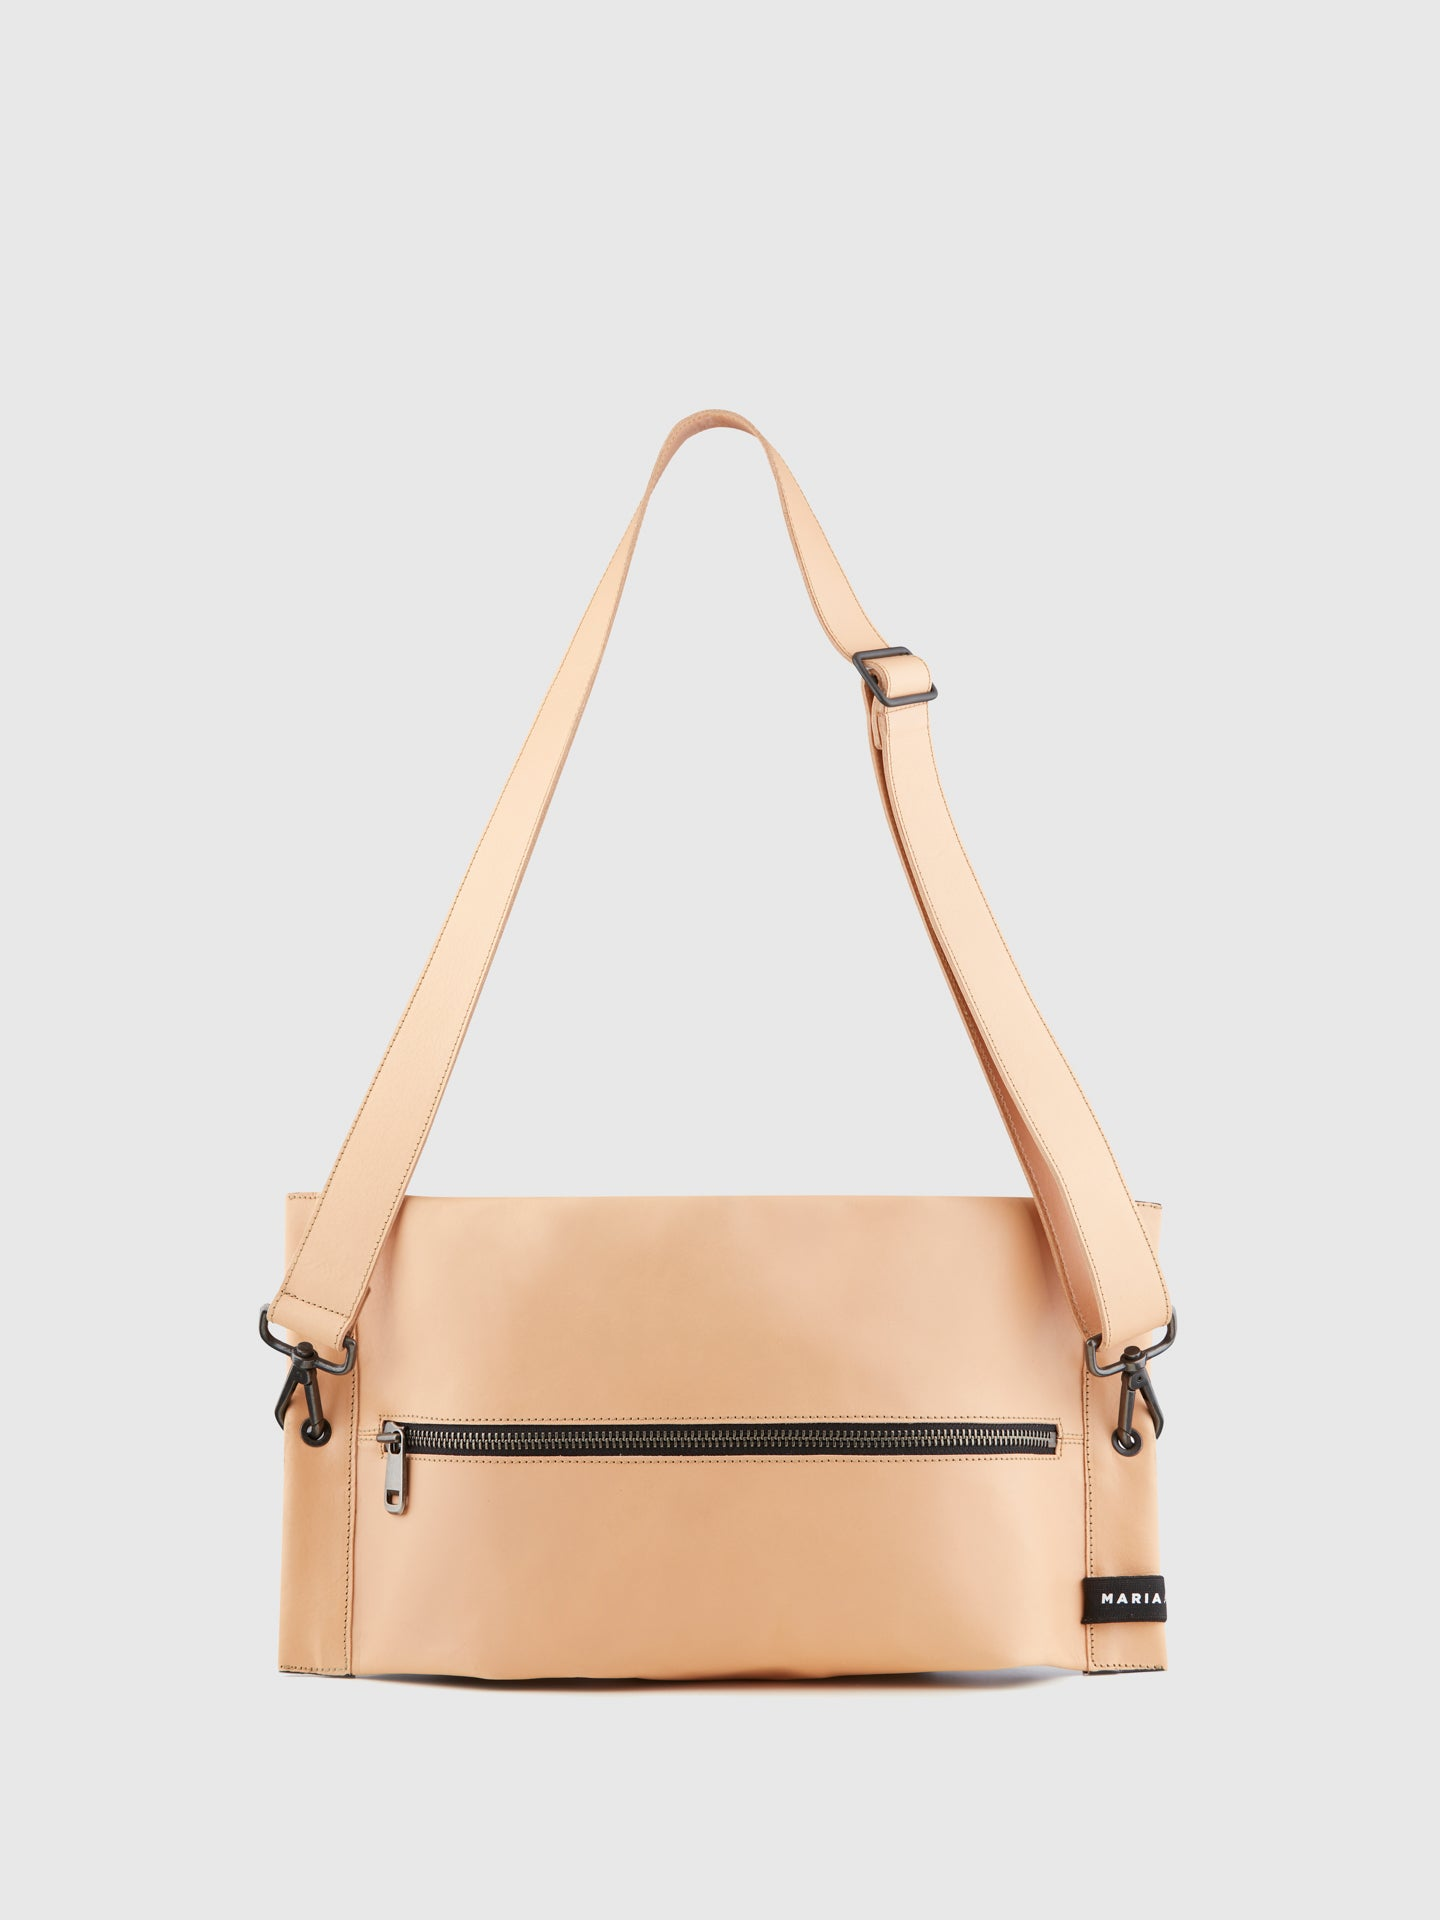 Maria Maleta Beige and Gray Reversible Crossbody Bag